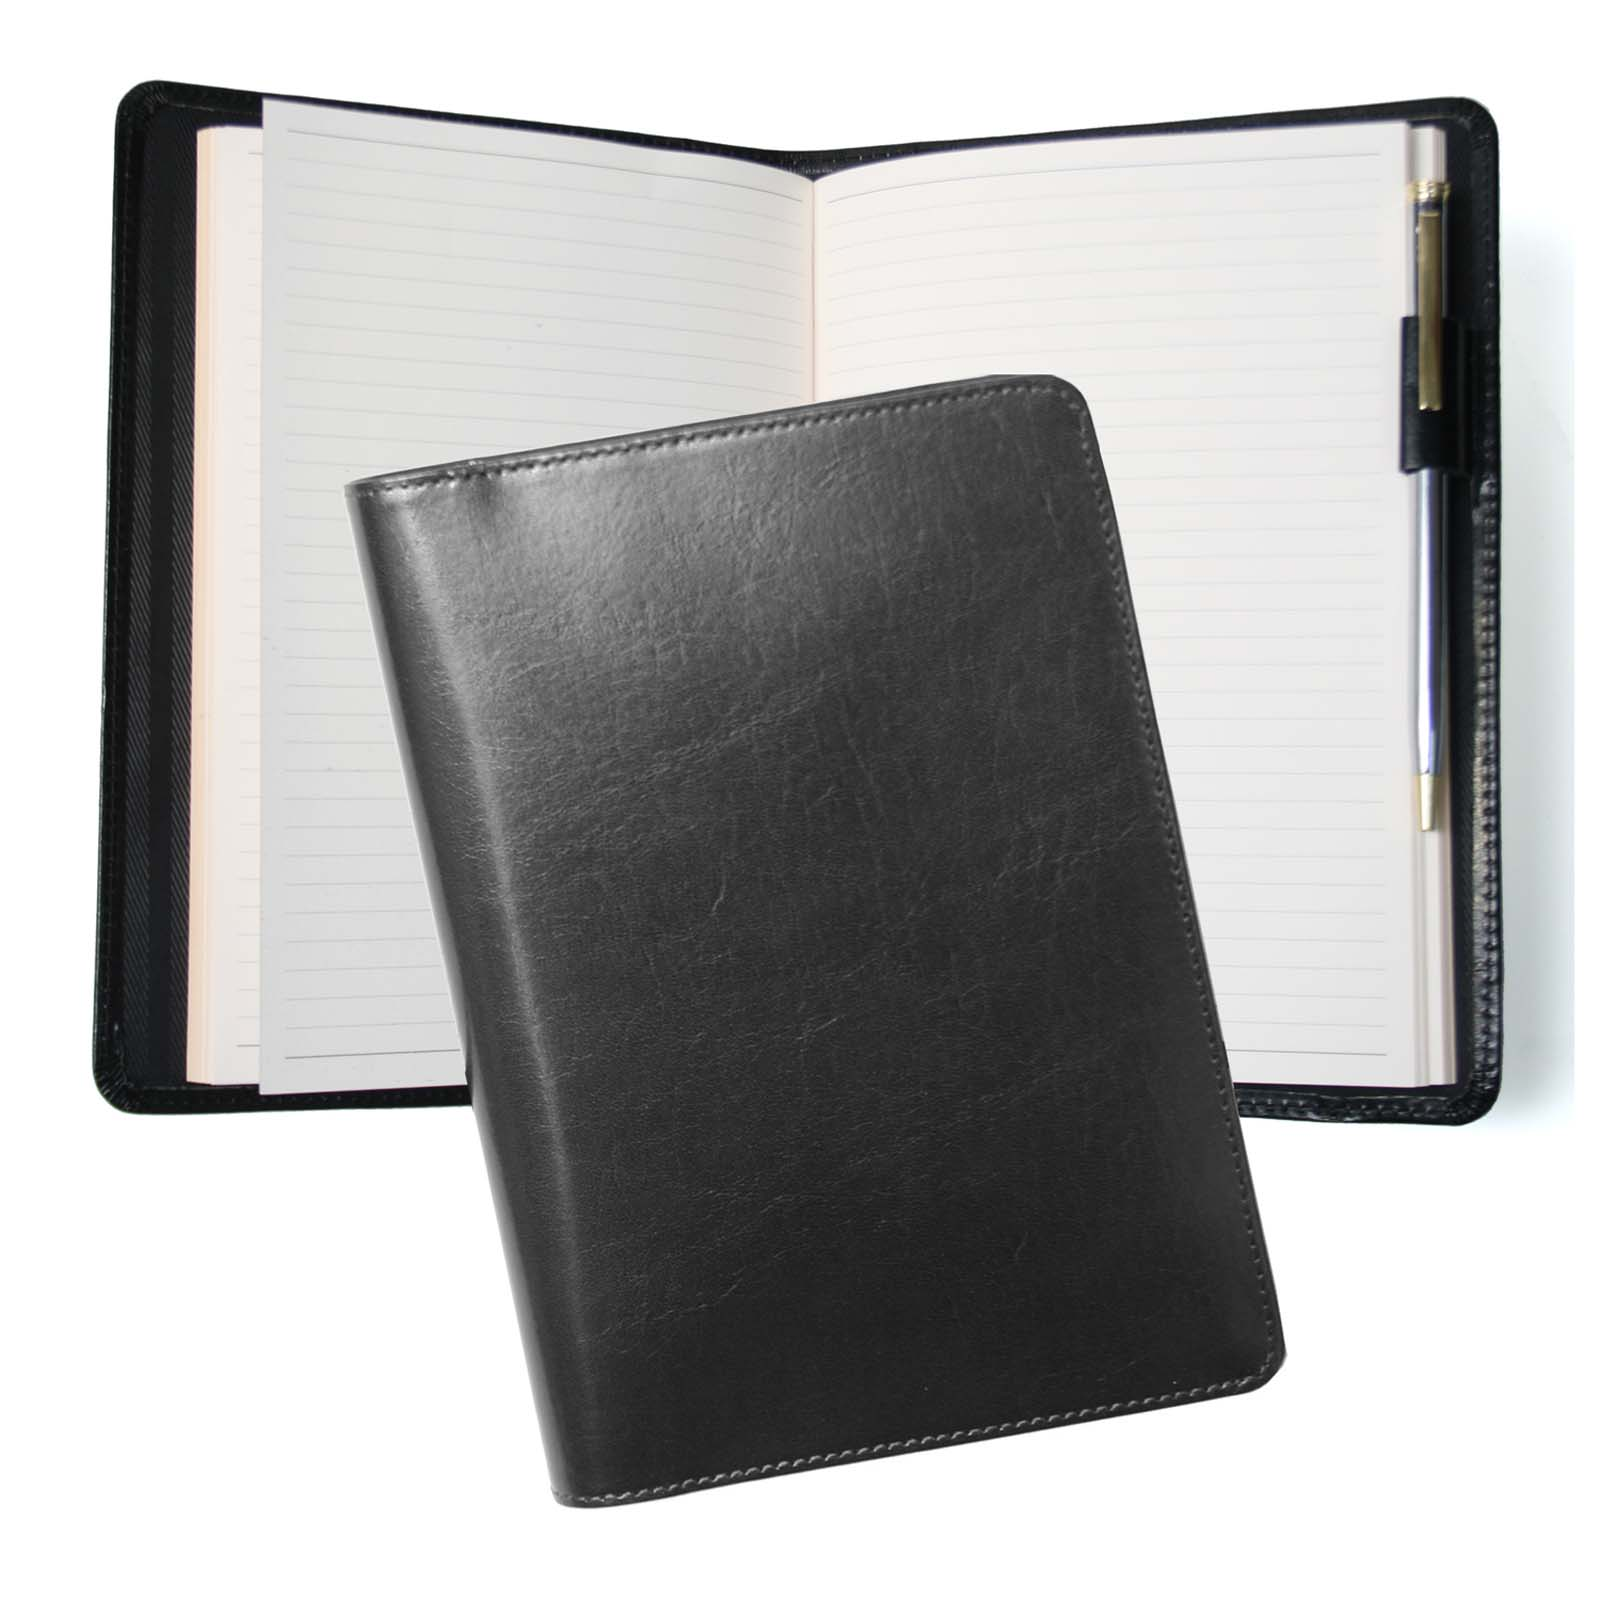 Royce Leather Travel Leather Executive Writing Journal